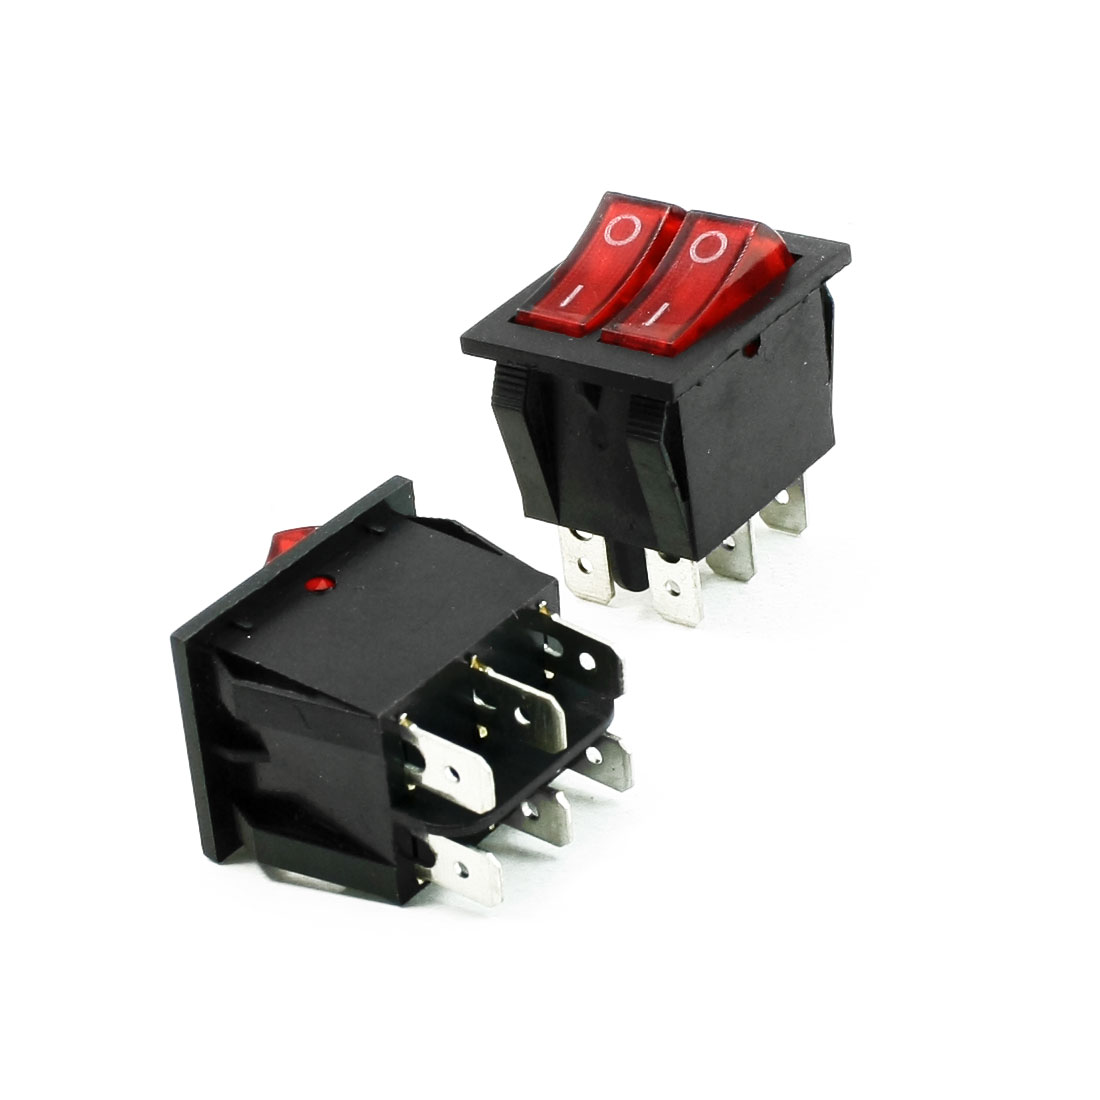 2 Pcs 6A/250V 20A/125V AC Red Neon Light SPST ON/OFF Boat Rocker Switch